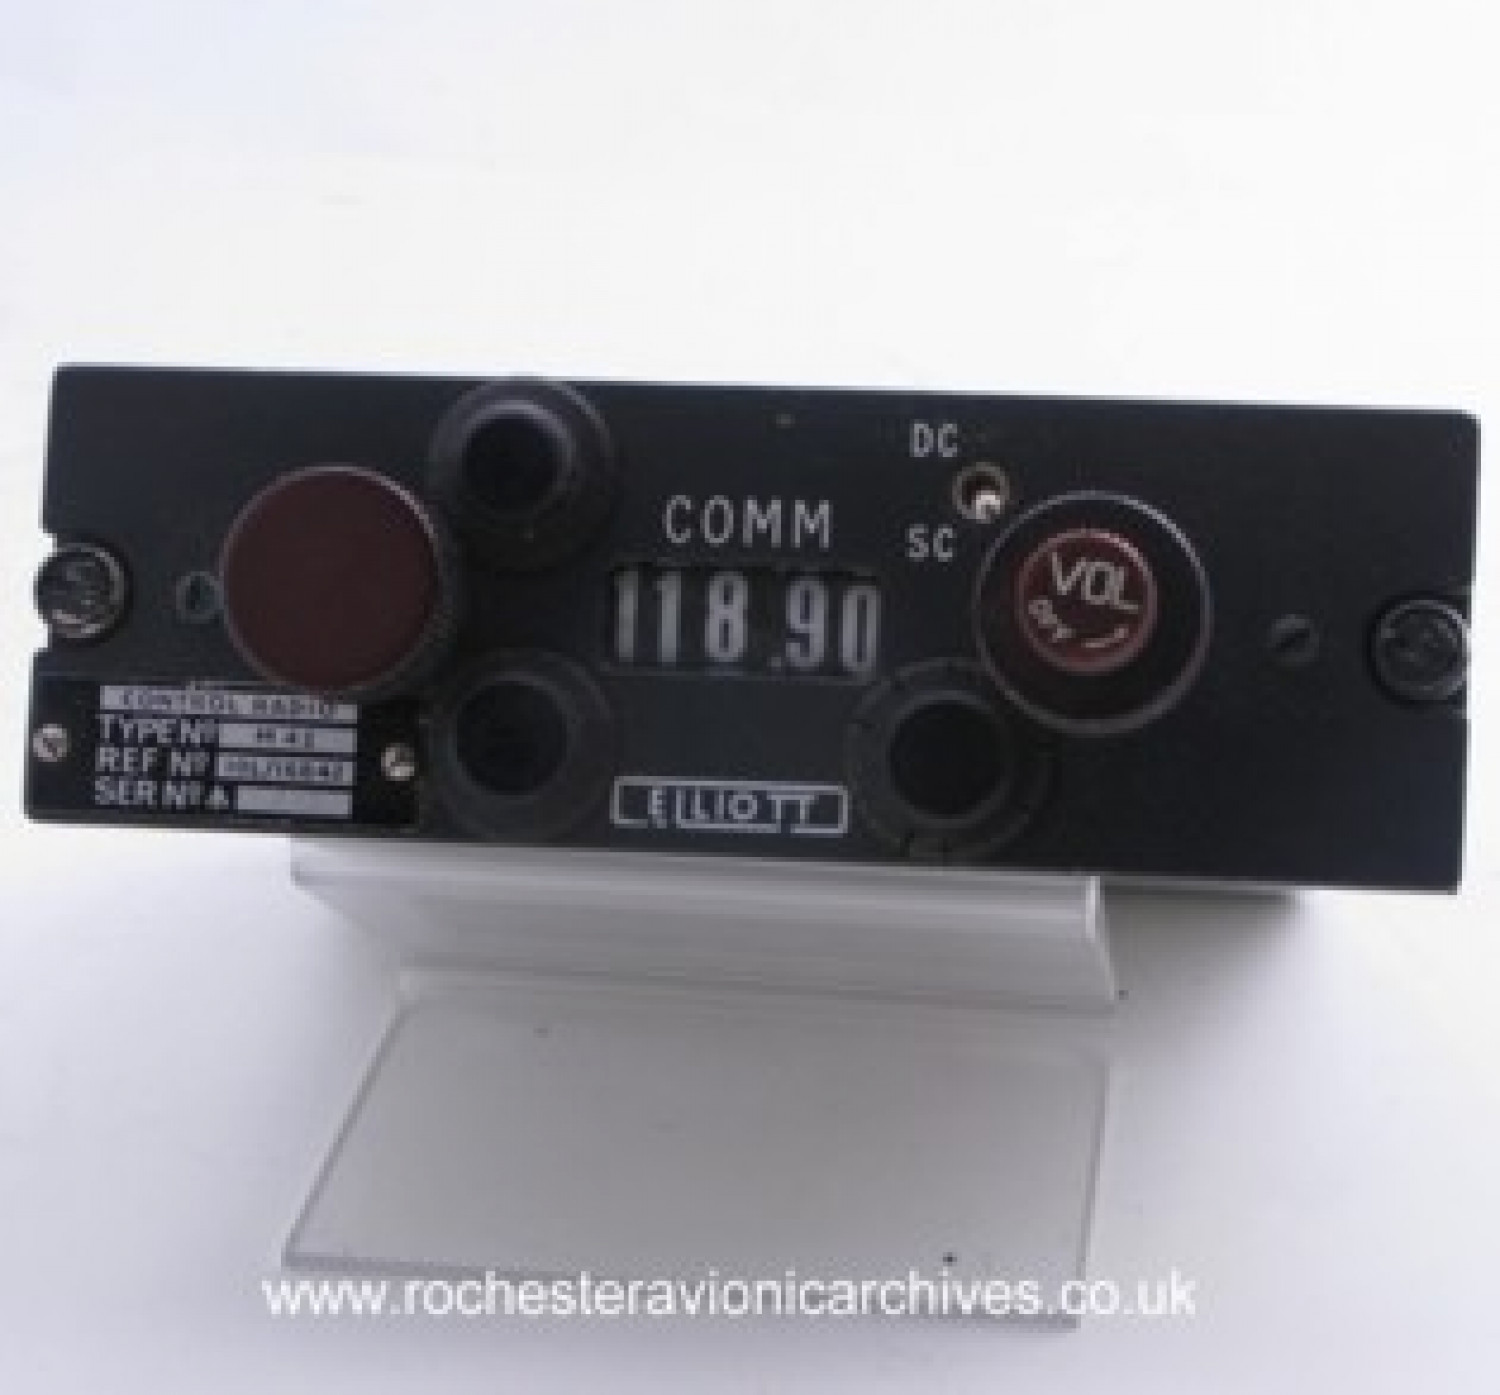 Communication Radio, Control Unit